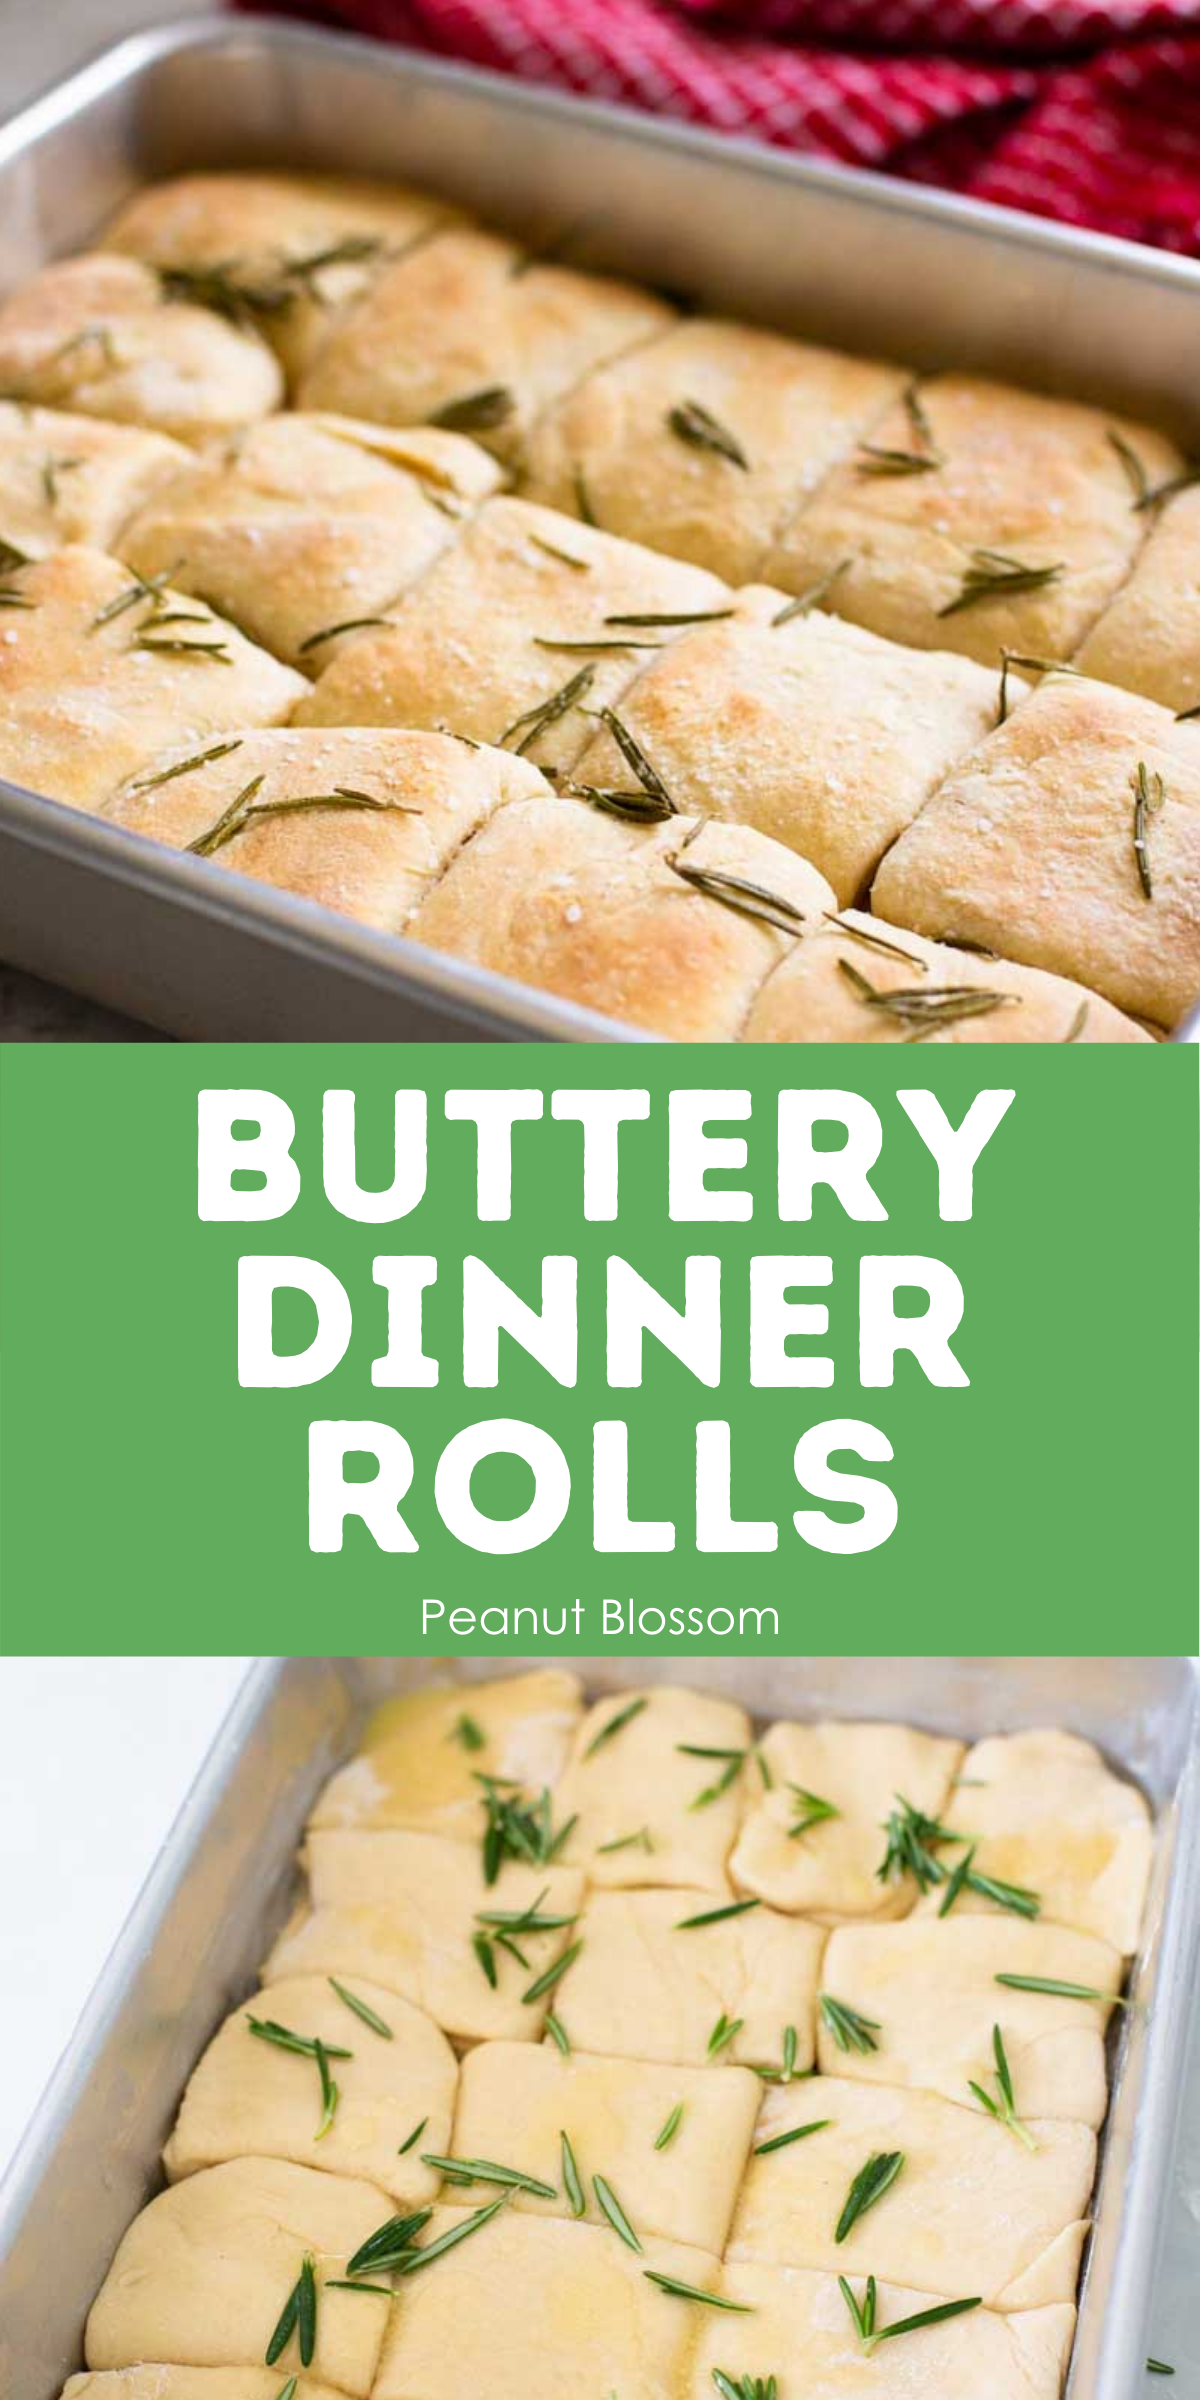 Image shows a pan of unbaked buttery dinner rolls compared to a finished pan to illustrate the difference in color on the top.